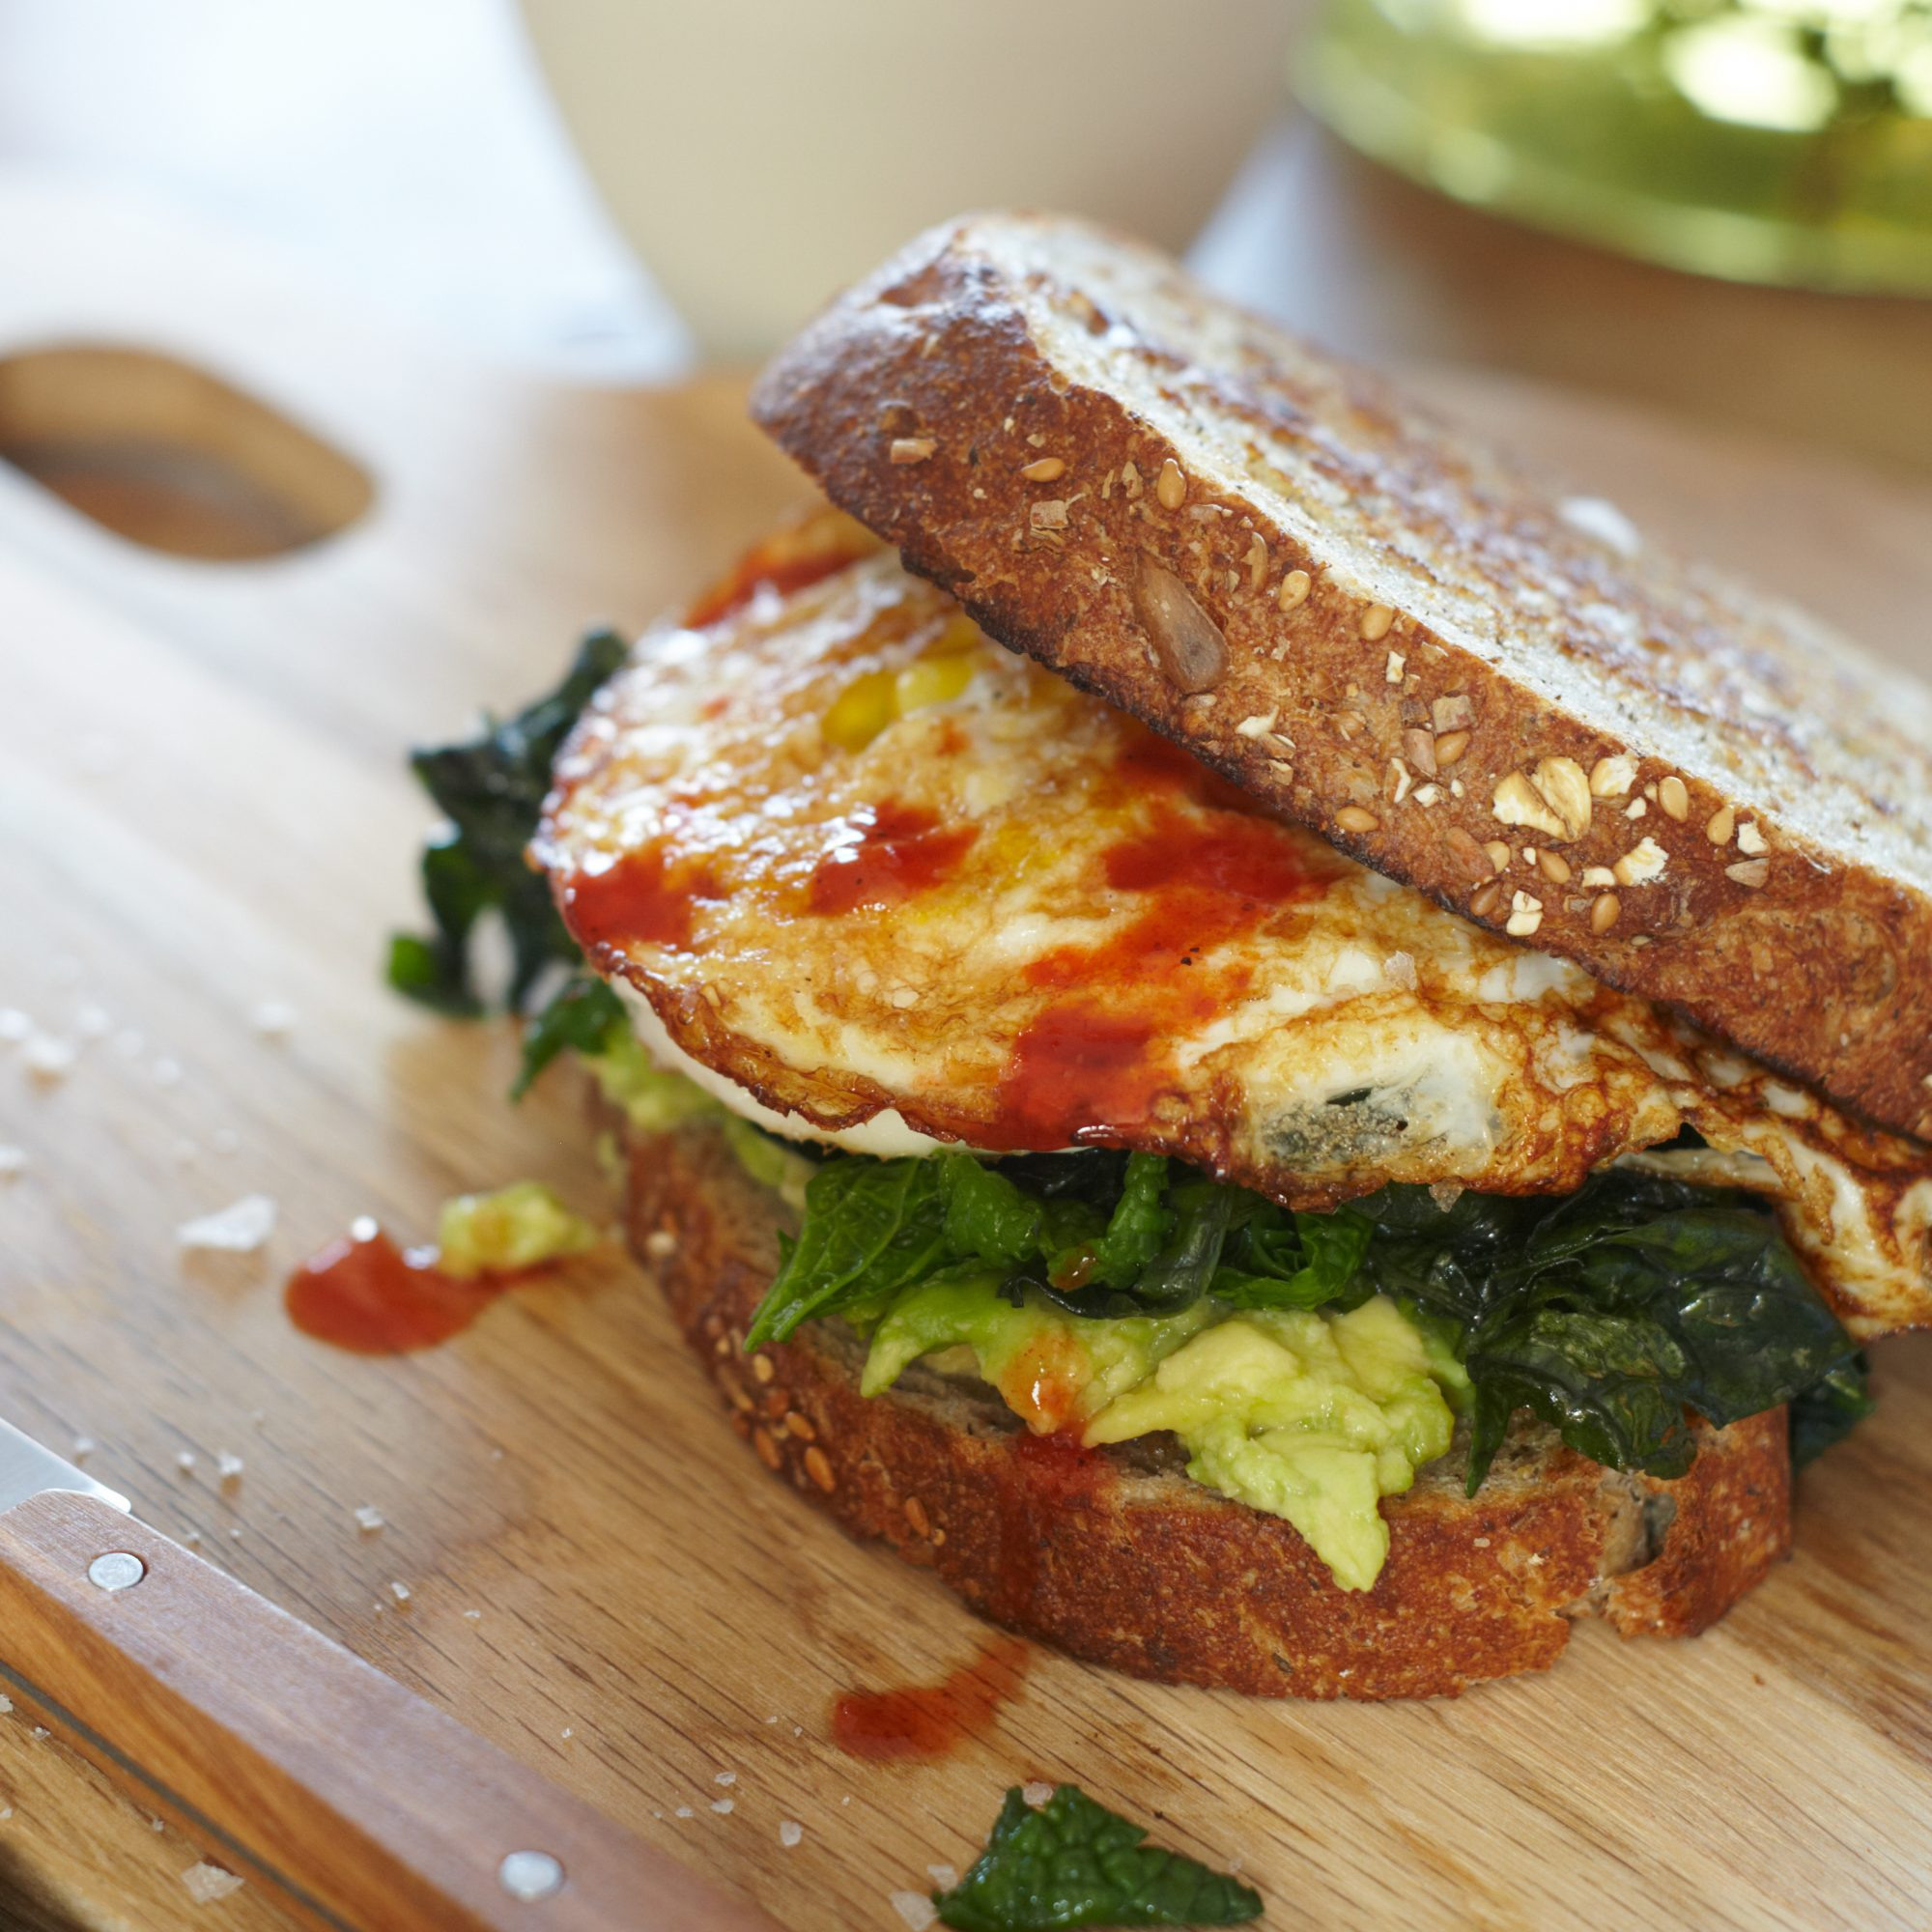 Egg Sandwich with Mustard Greens and Avocado